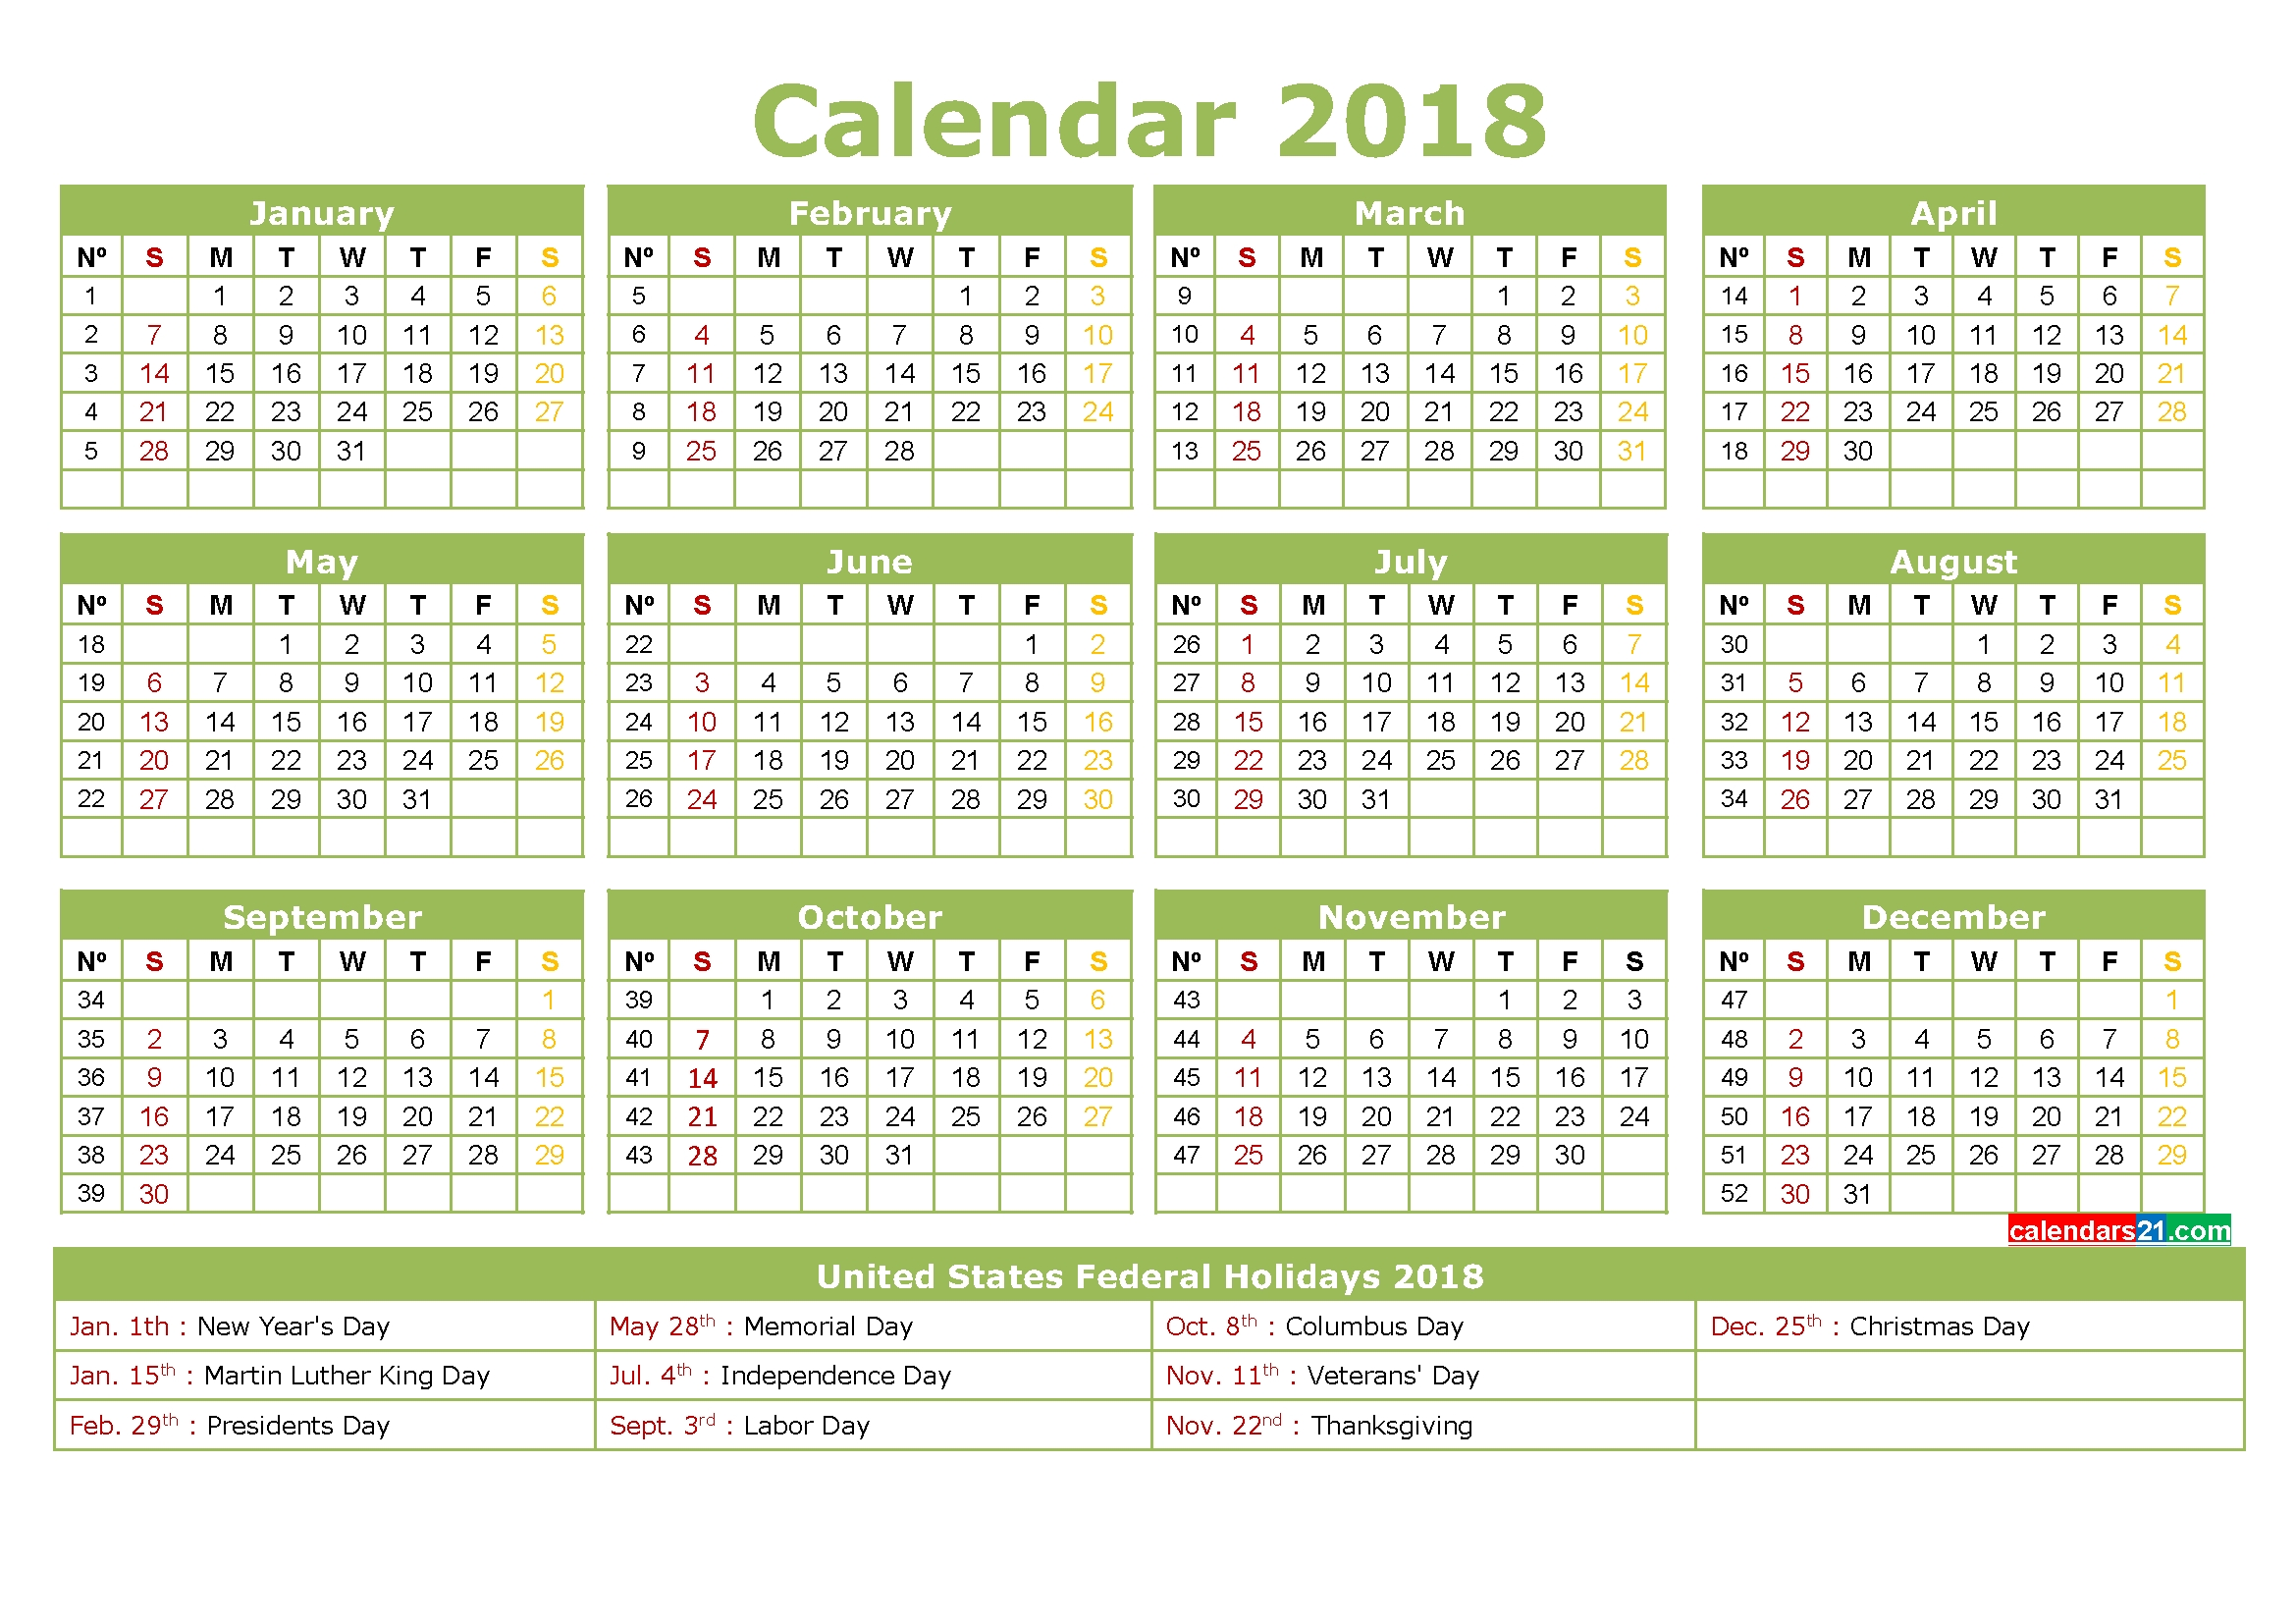 printable calendar 2018 with holidays full year 4 templates 2018 2018 Calendar With Holidays Usa Printable erdferdf